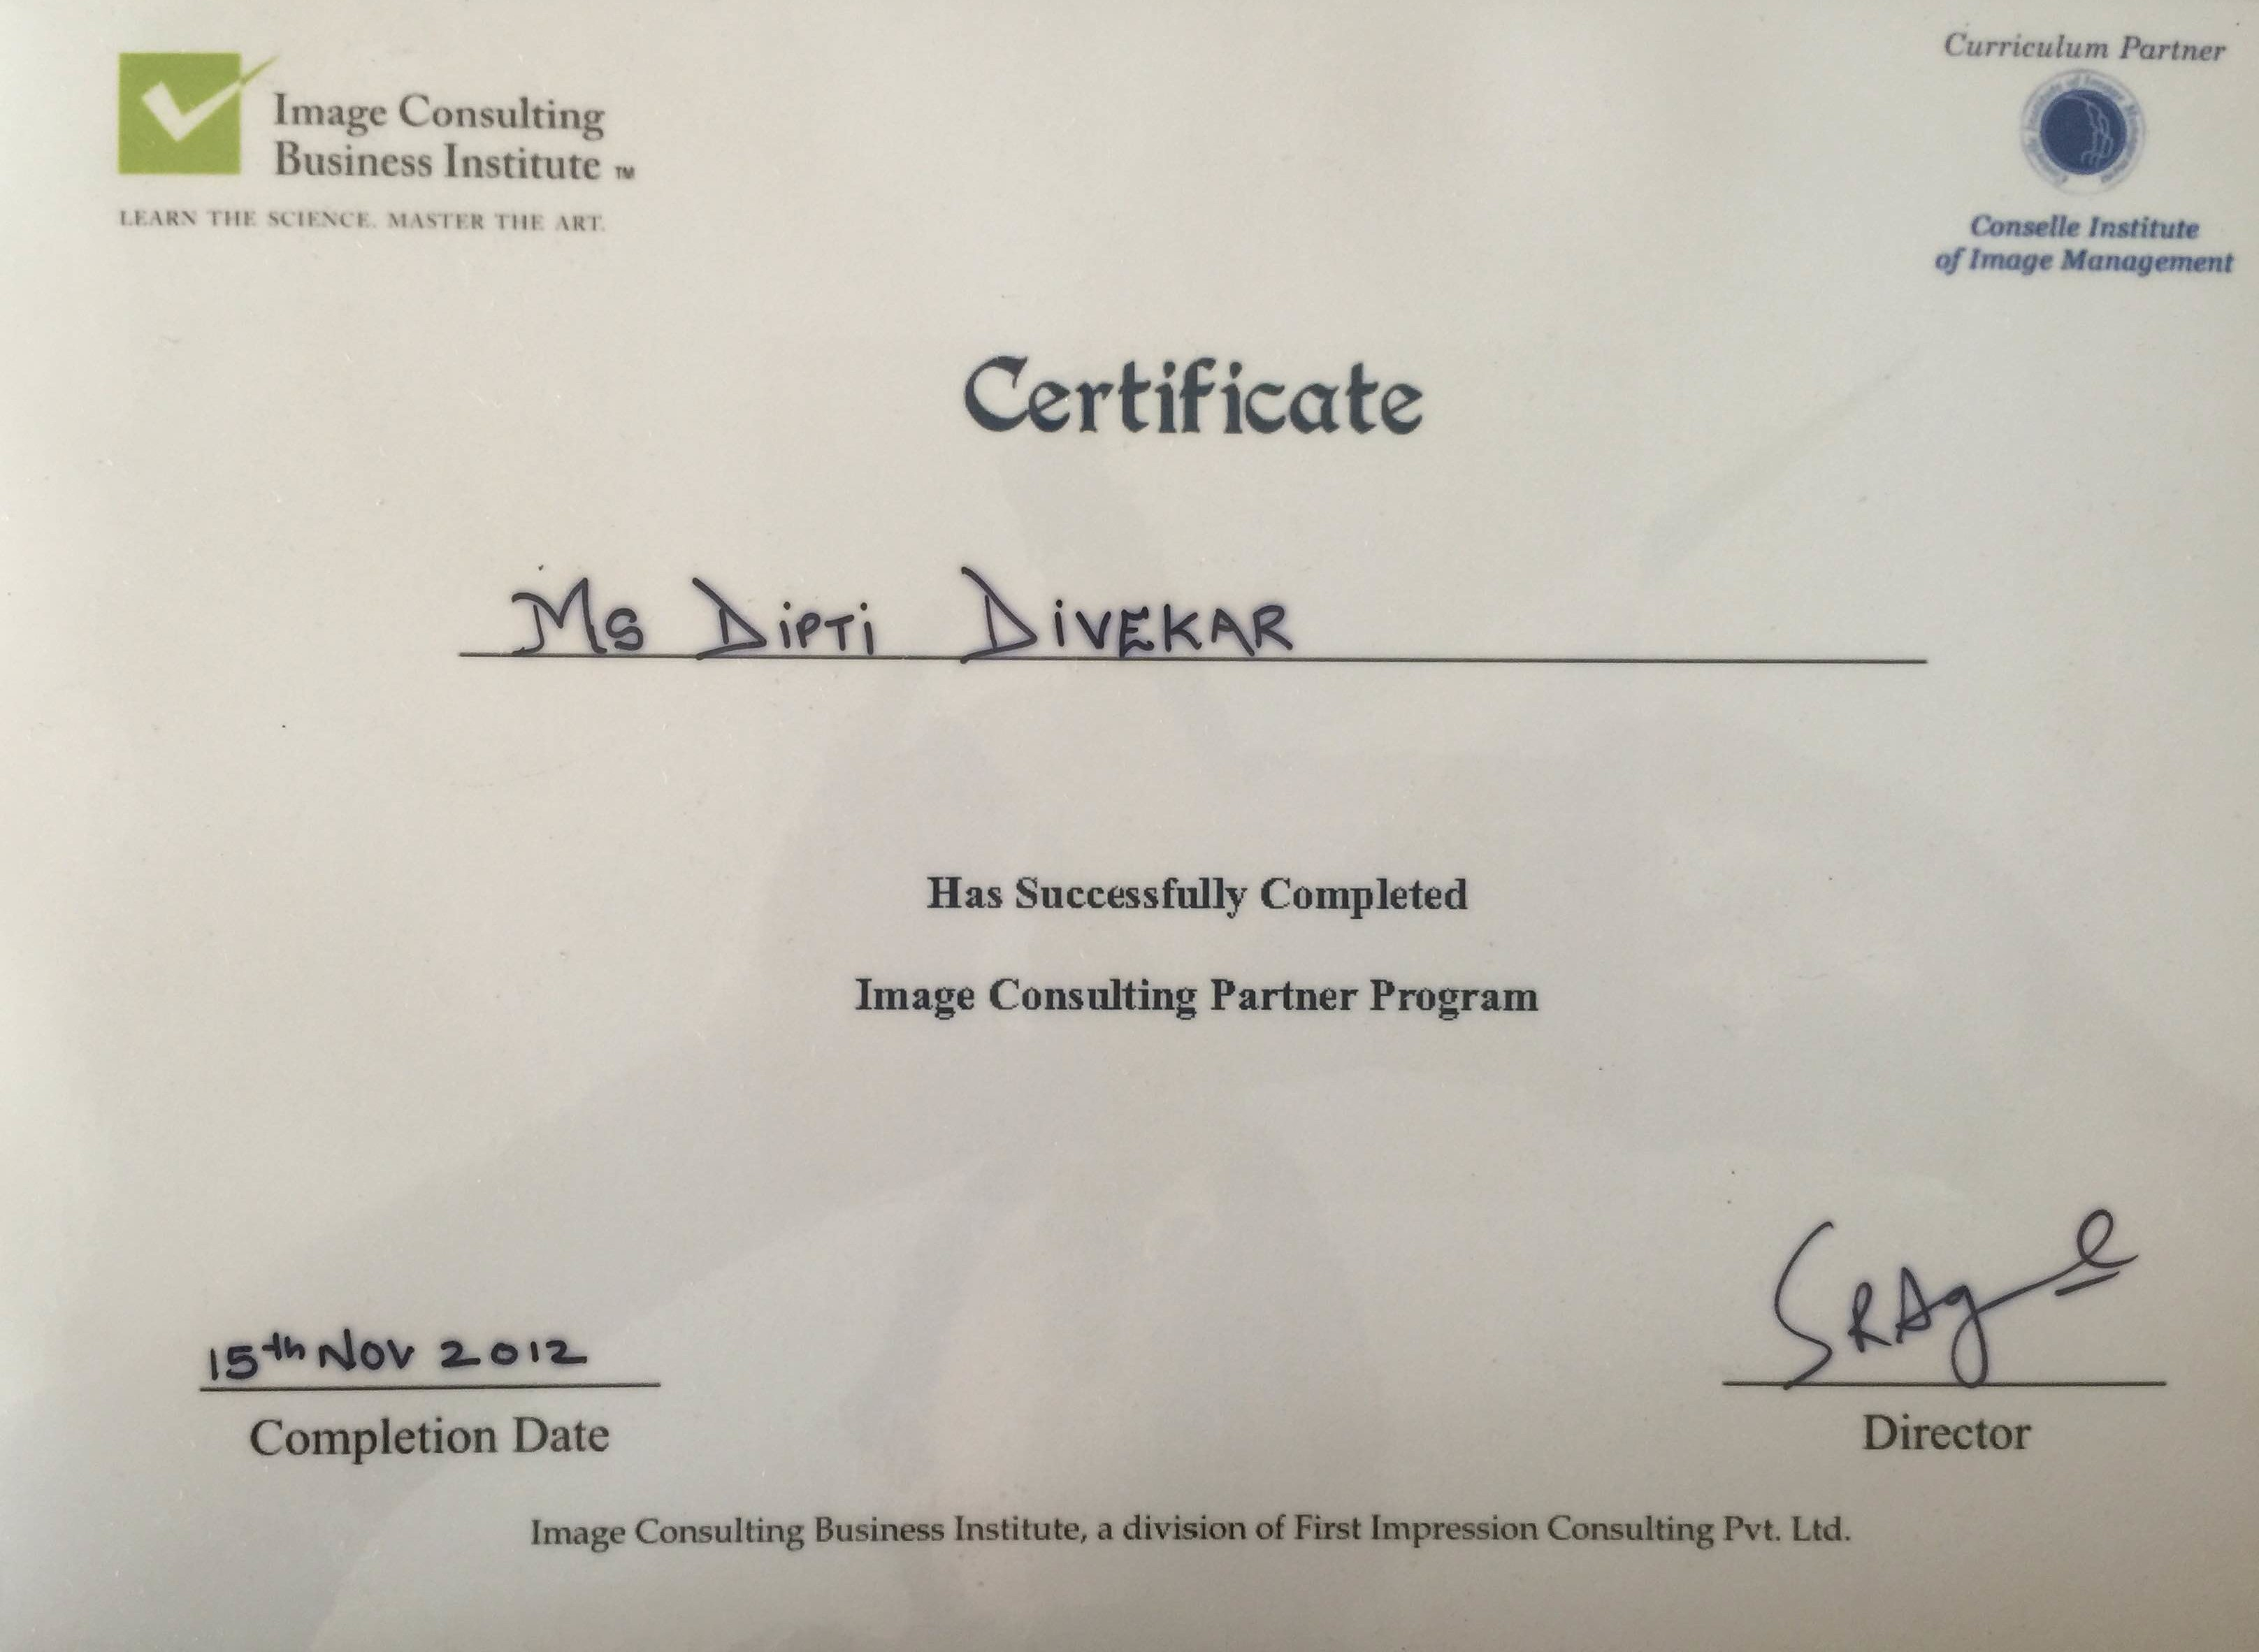 Certified by the Conselle Institute of Image Management U.S.A. & the Image Consulting Business Institute